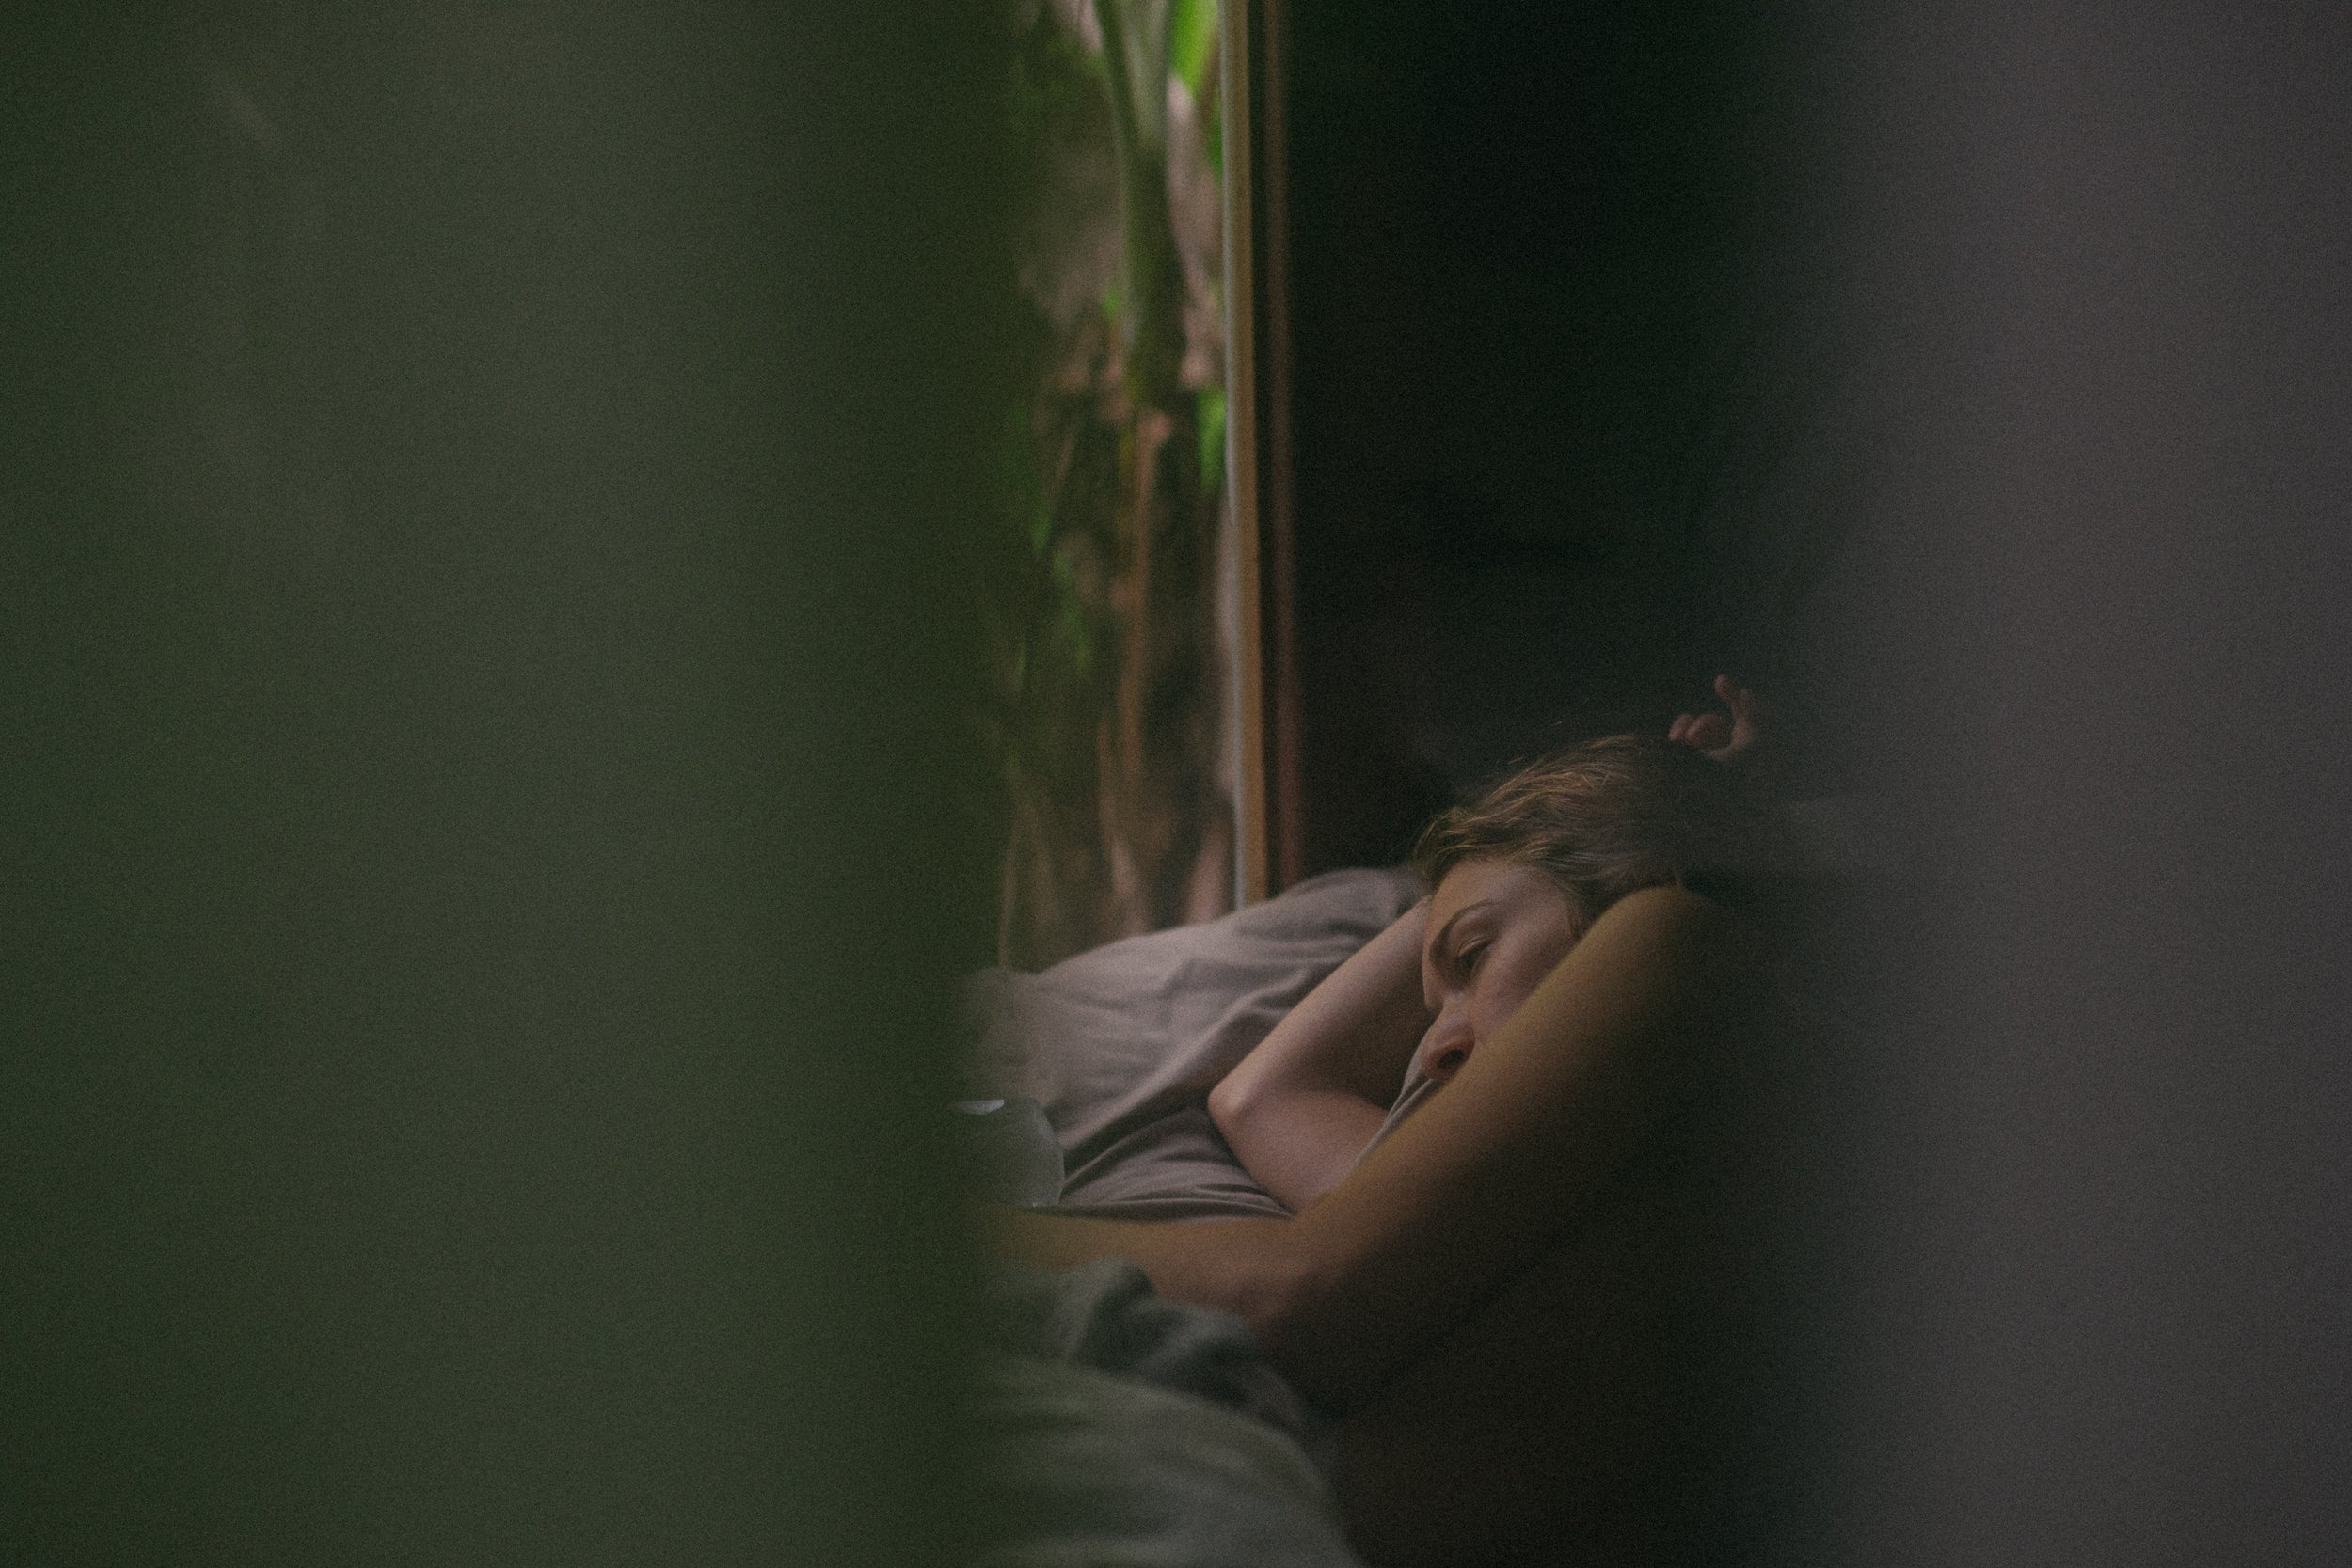 Framed through an open door, a young woman is laying in bed with her eyes open.